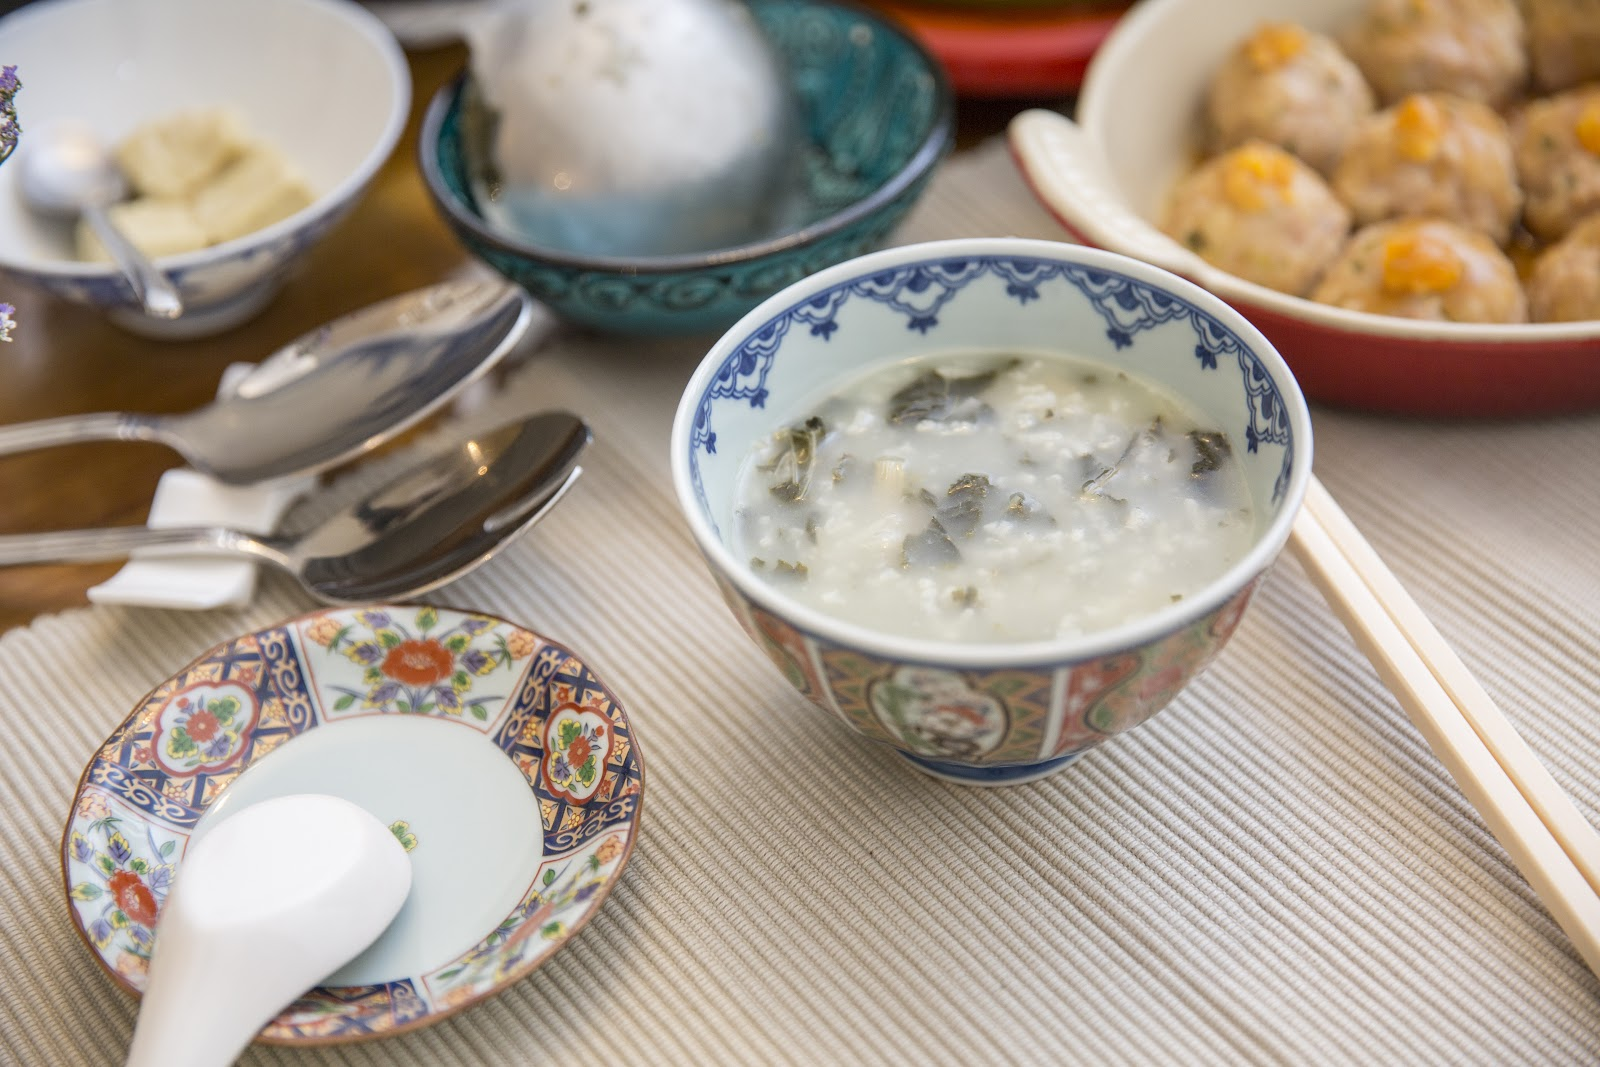 Cantonese congee, served with a myriad of side dishes